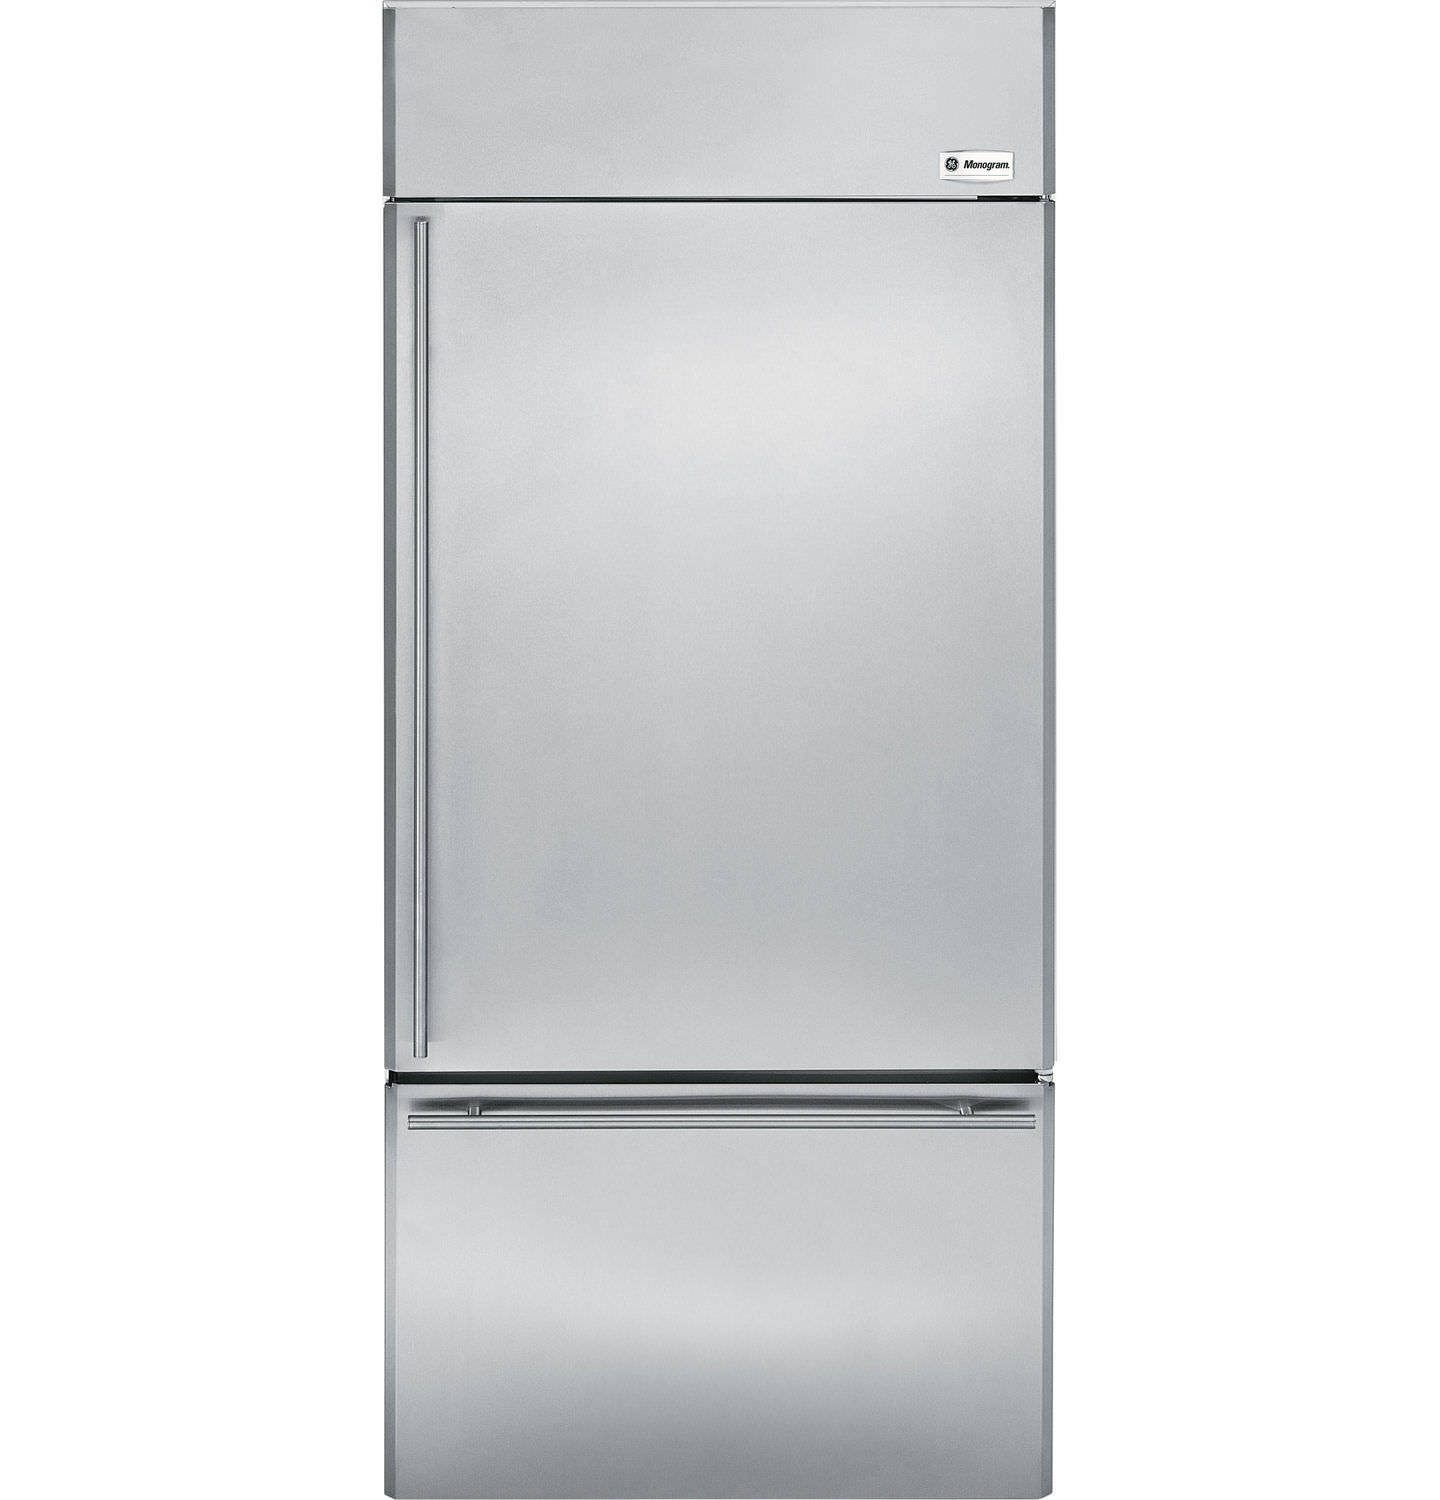 Home Refrigerator Freezer Upright Stainless Steel Energy Efficient Zics360nxrh